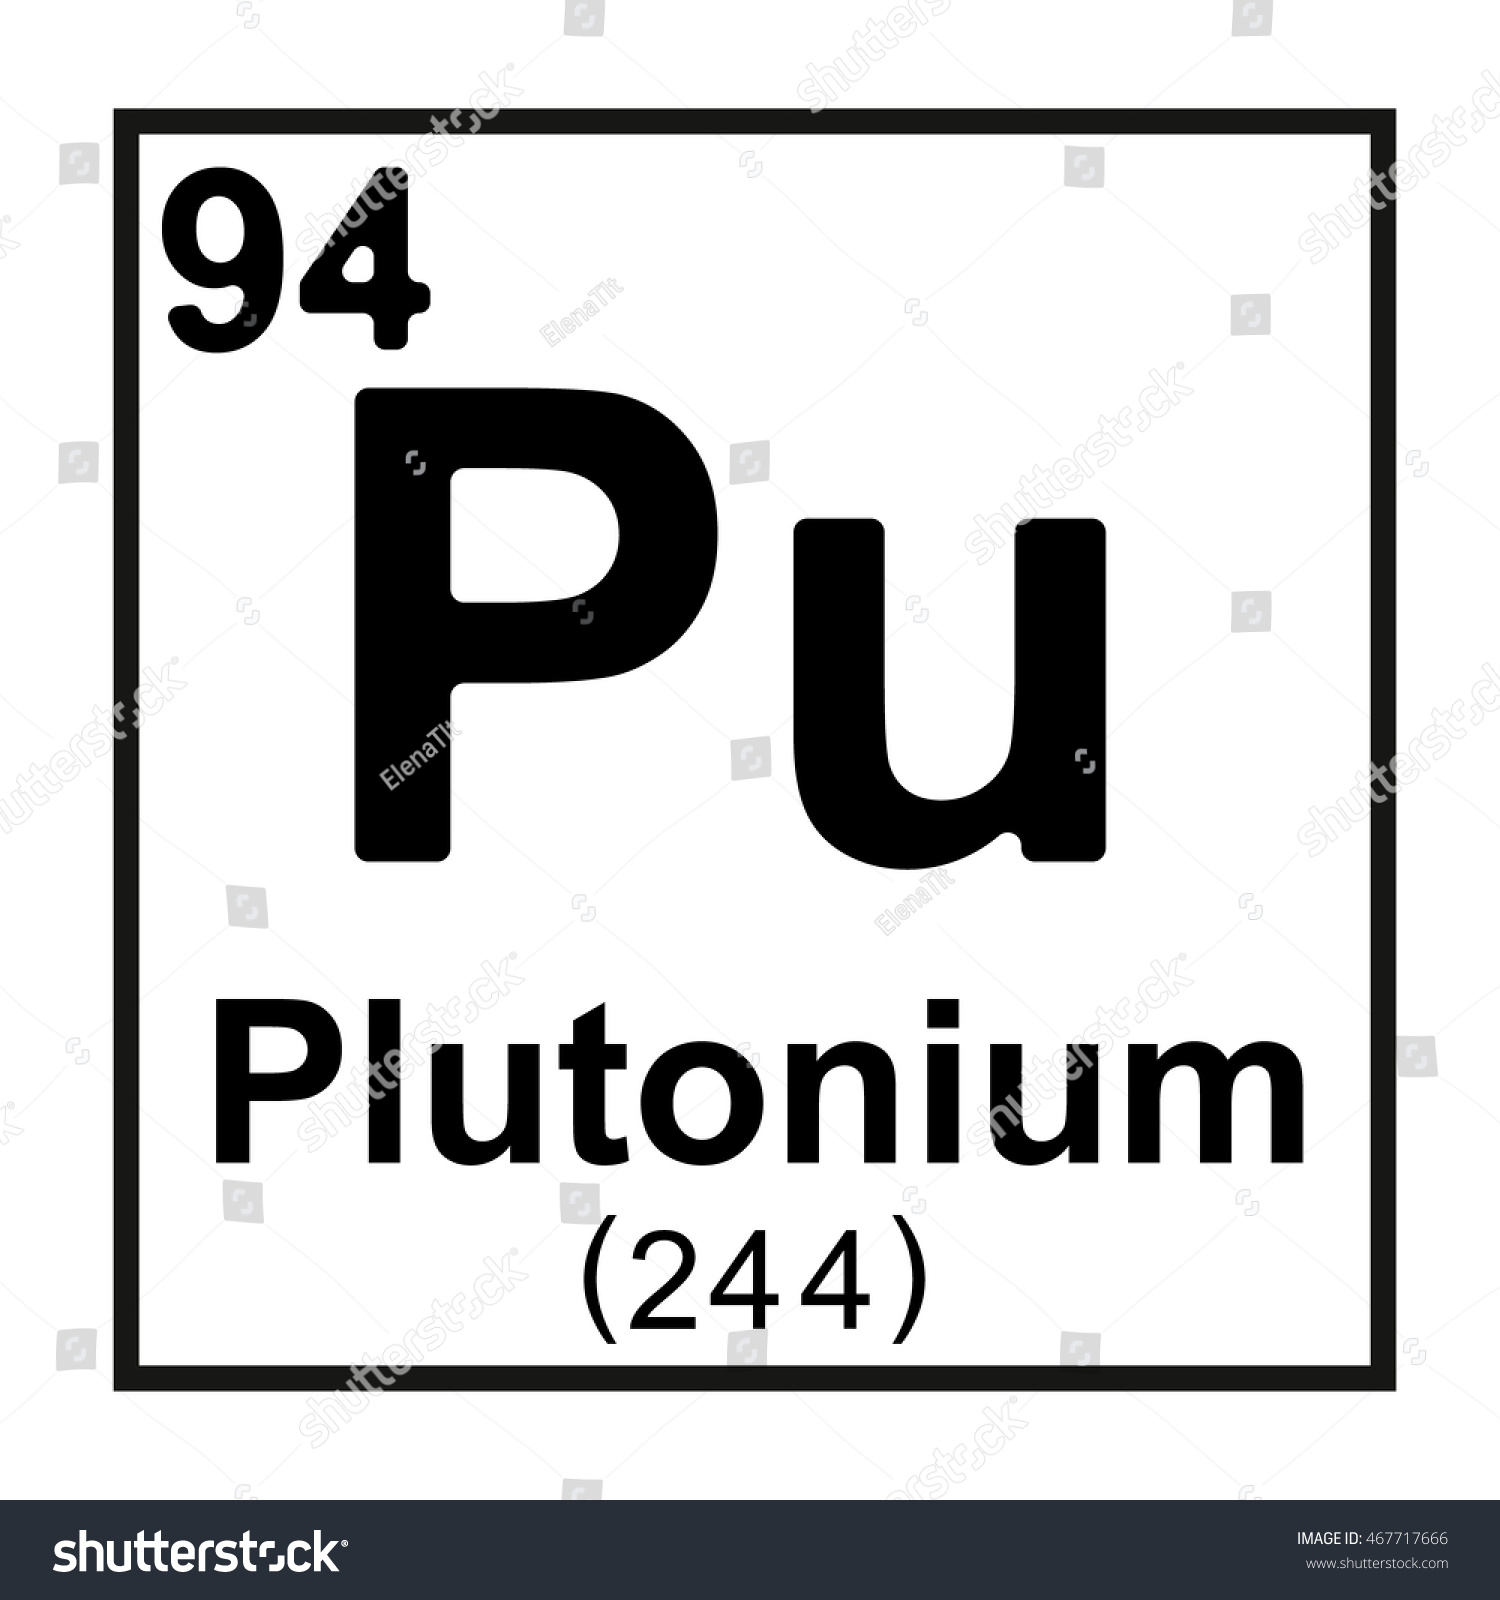 Periodic table element plutonium stock vector 467717666 shutterstock periodic table element plutonium gamestrikefo Image collections